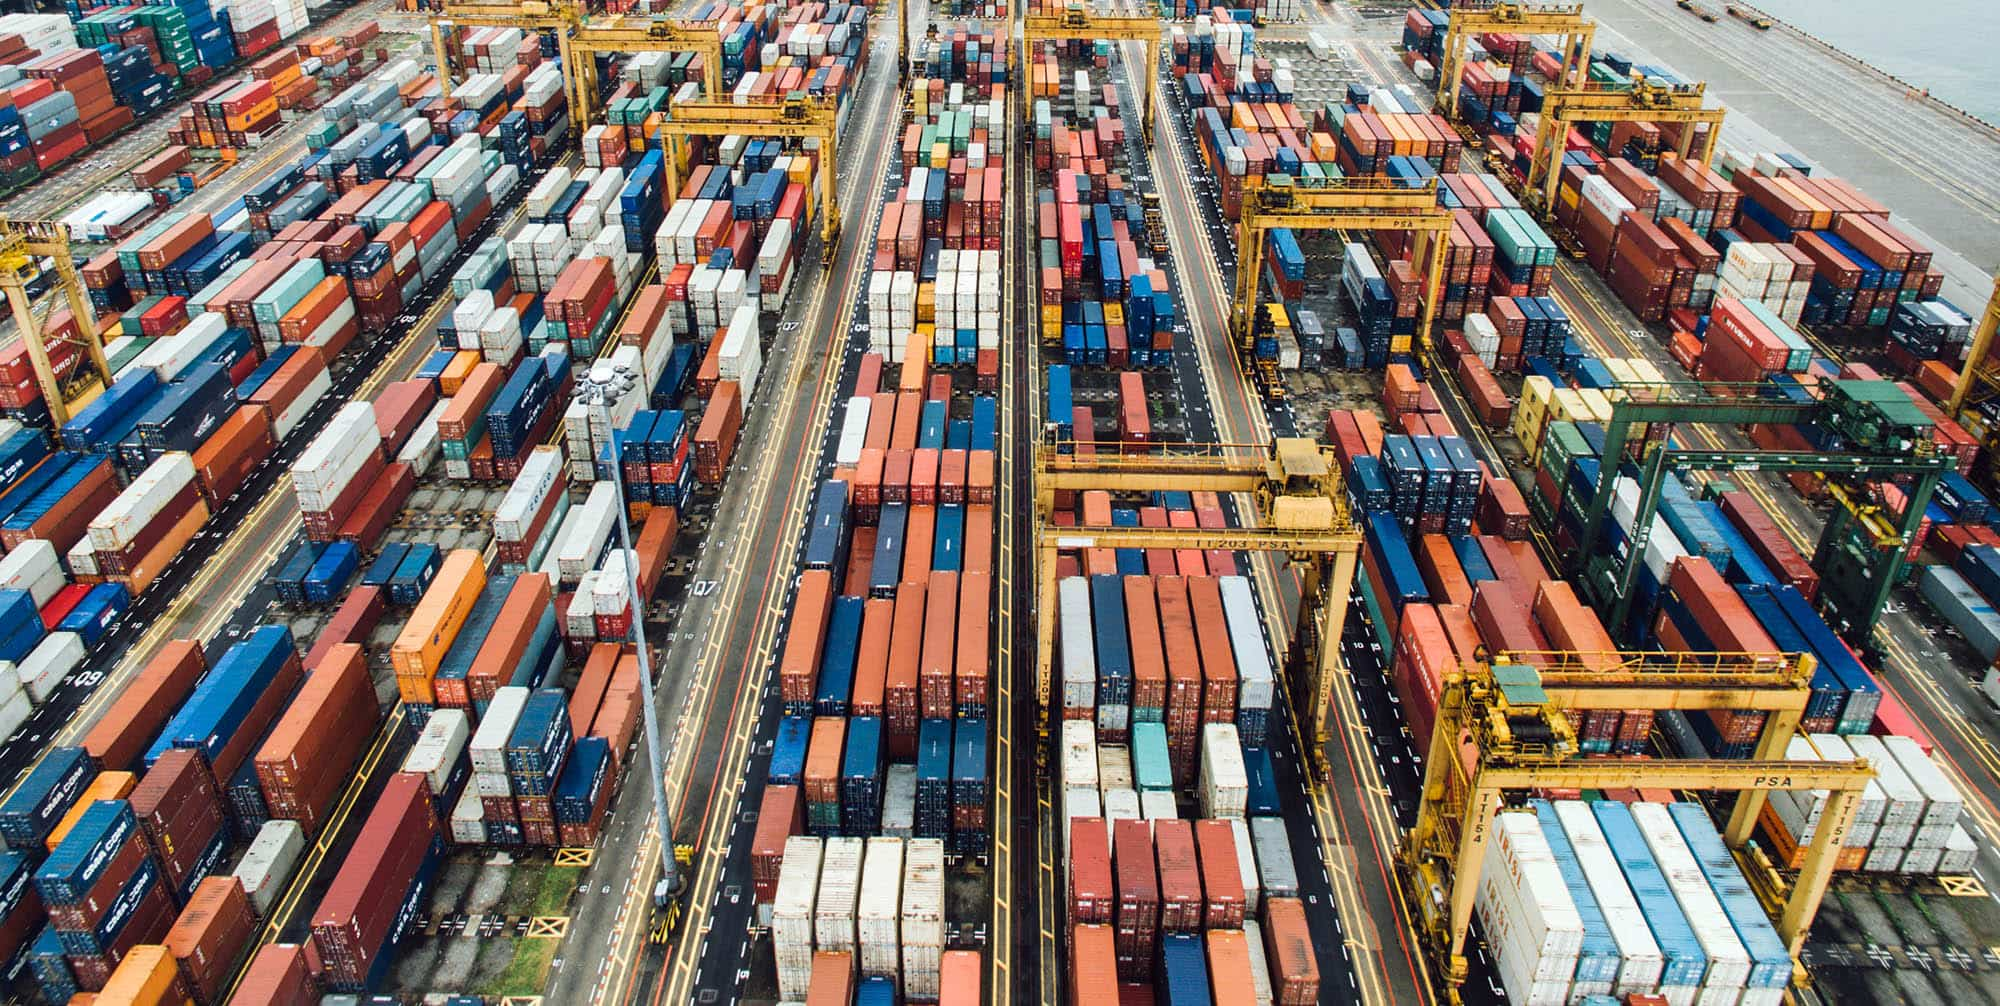 Photo of shipping containers on a port